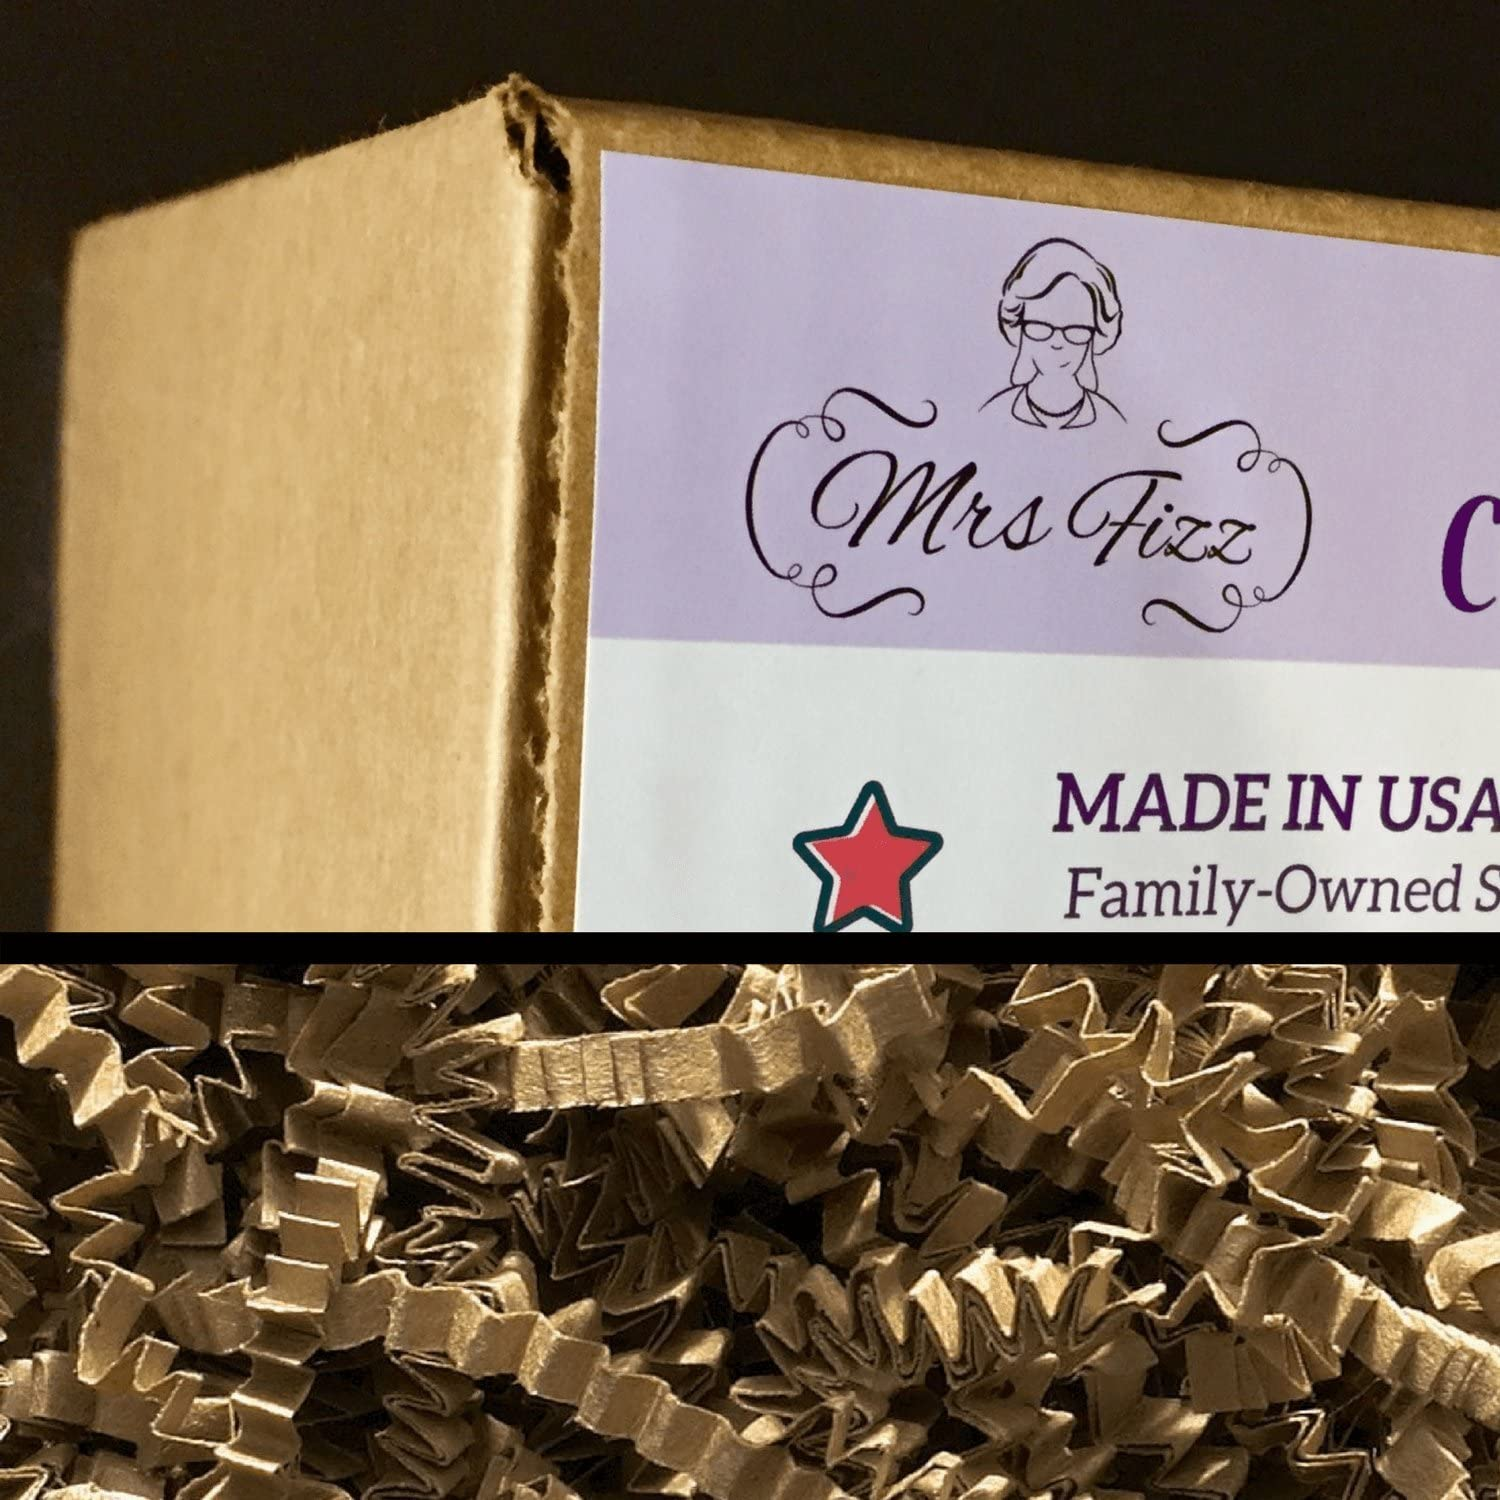 Crinkle Cut Paper Shred Filler for Packing and Filling Gift Baskets, Natural Craft Bedding in Brown Kraft Red Pink and White … (2 LB, KRAFT): Office Products